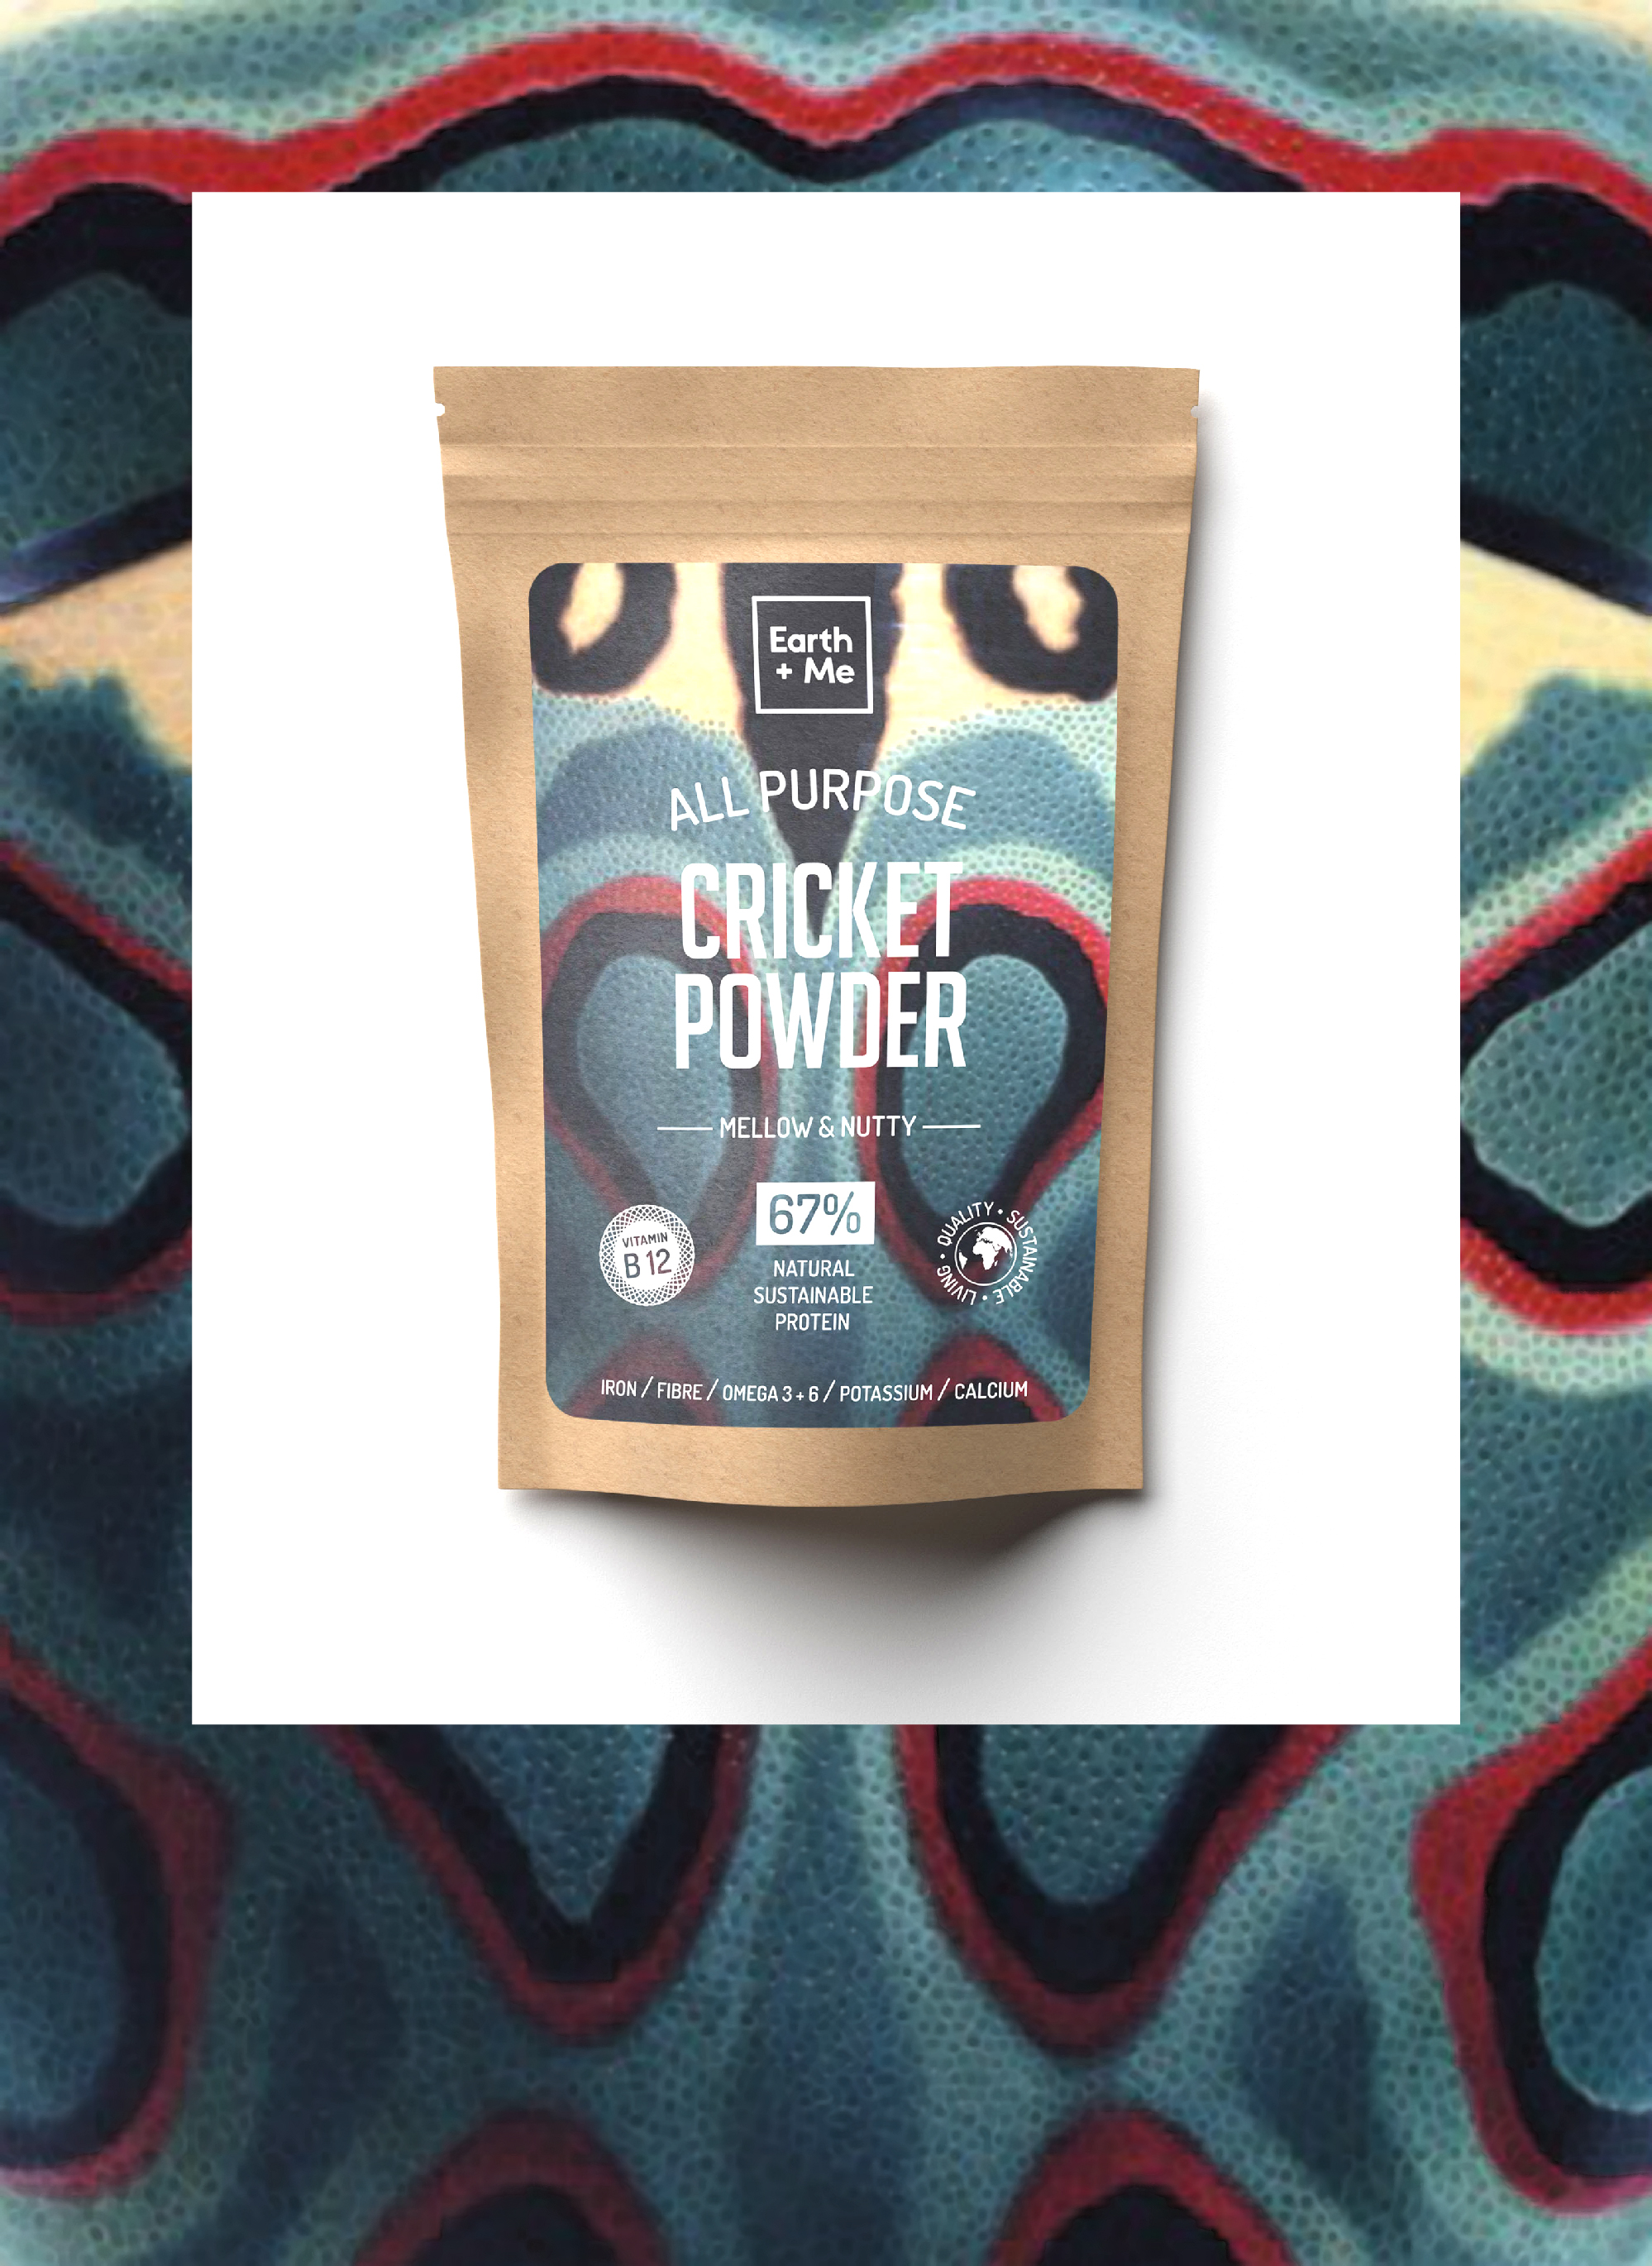 CRICKET POWDER - _The best natural and complete protein in the world!Lightly roasted and milled into a fine flour, our all purpose cricket powder gives a huge nutritional boost to any recipe you mix it into._SHOP NOW_WHY CRICKETS?_